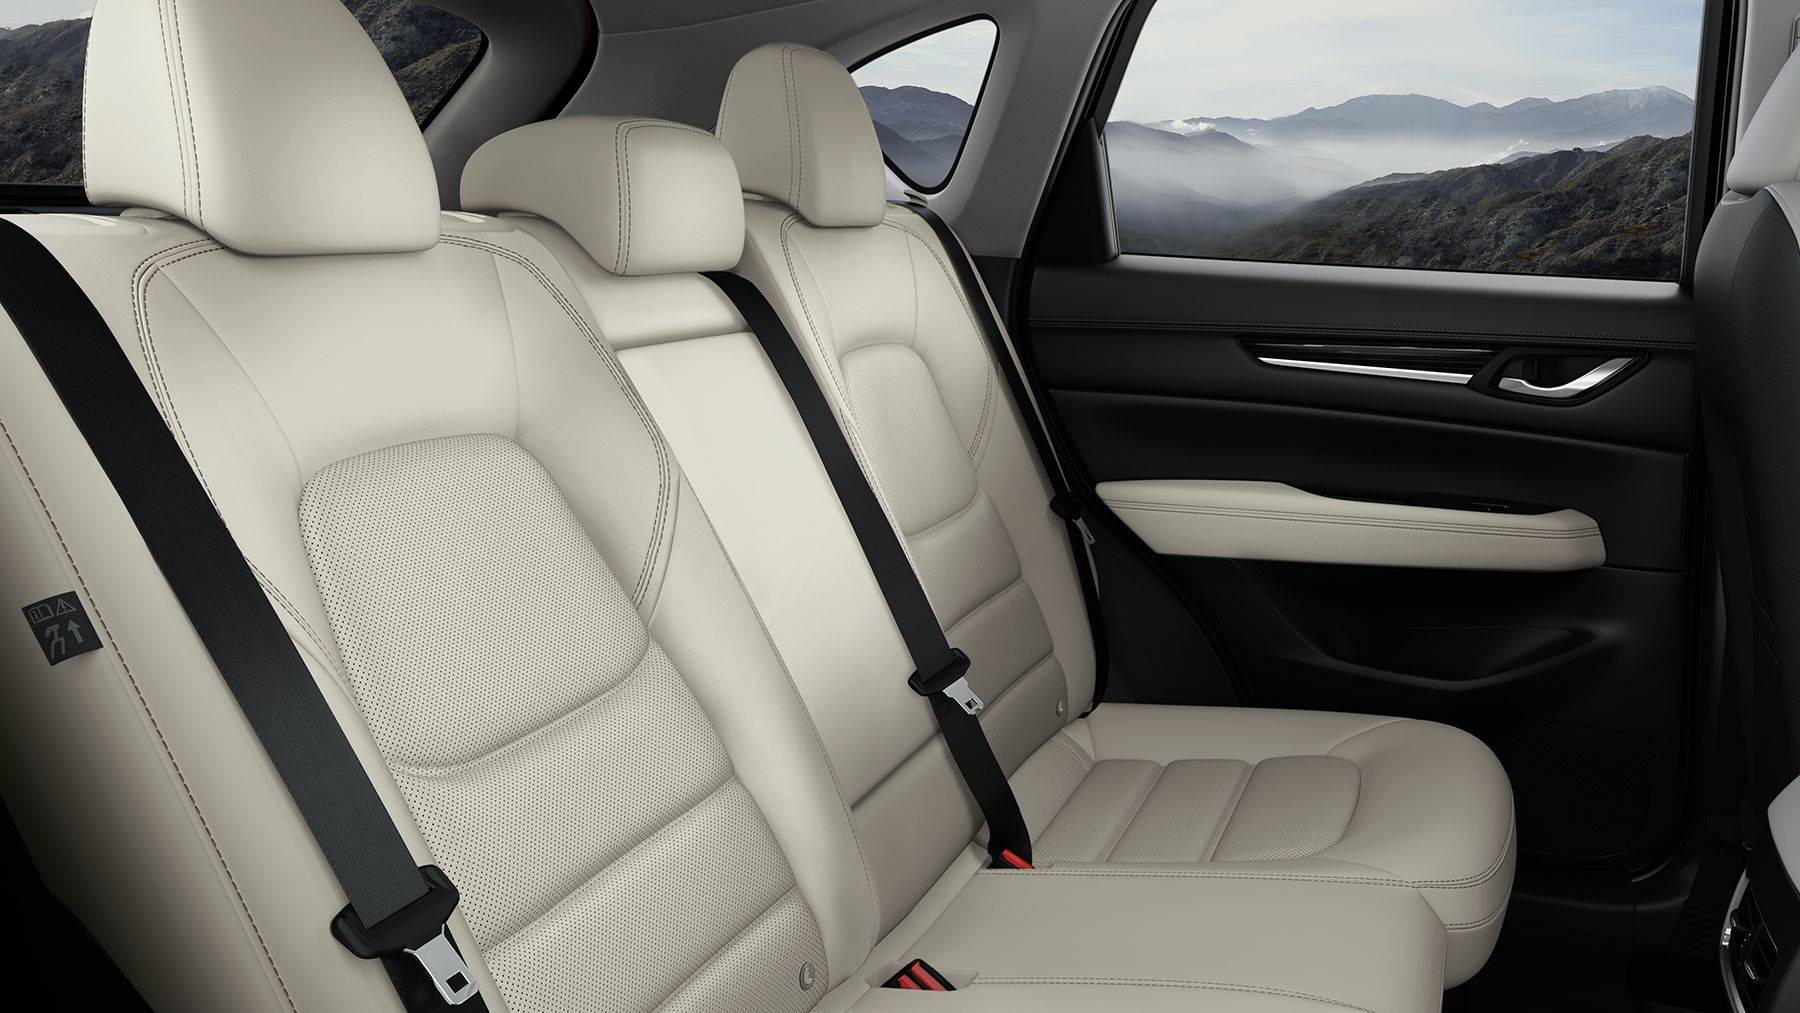 Enjoy Optimum Comfort During Any Drive in the Mazda CX-5!